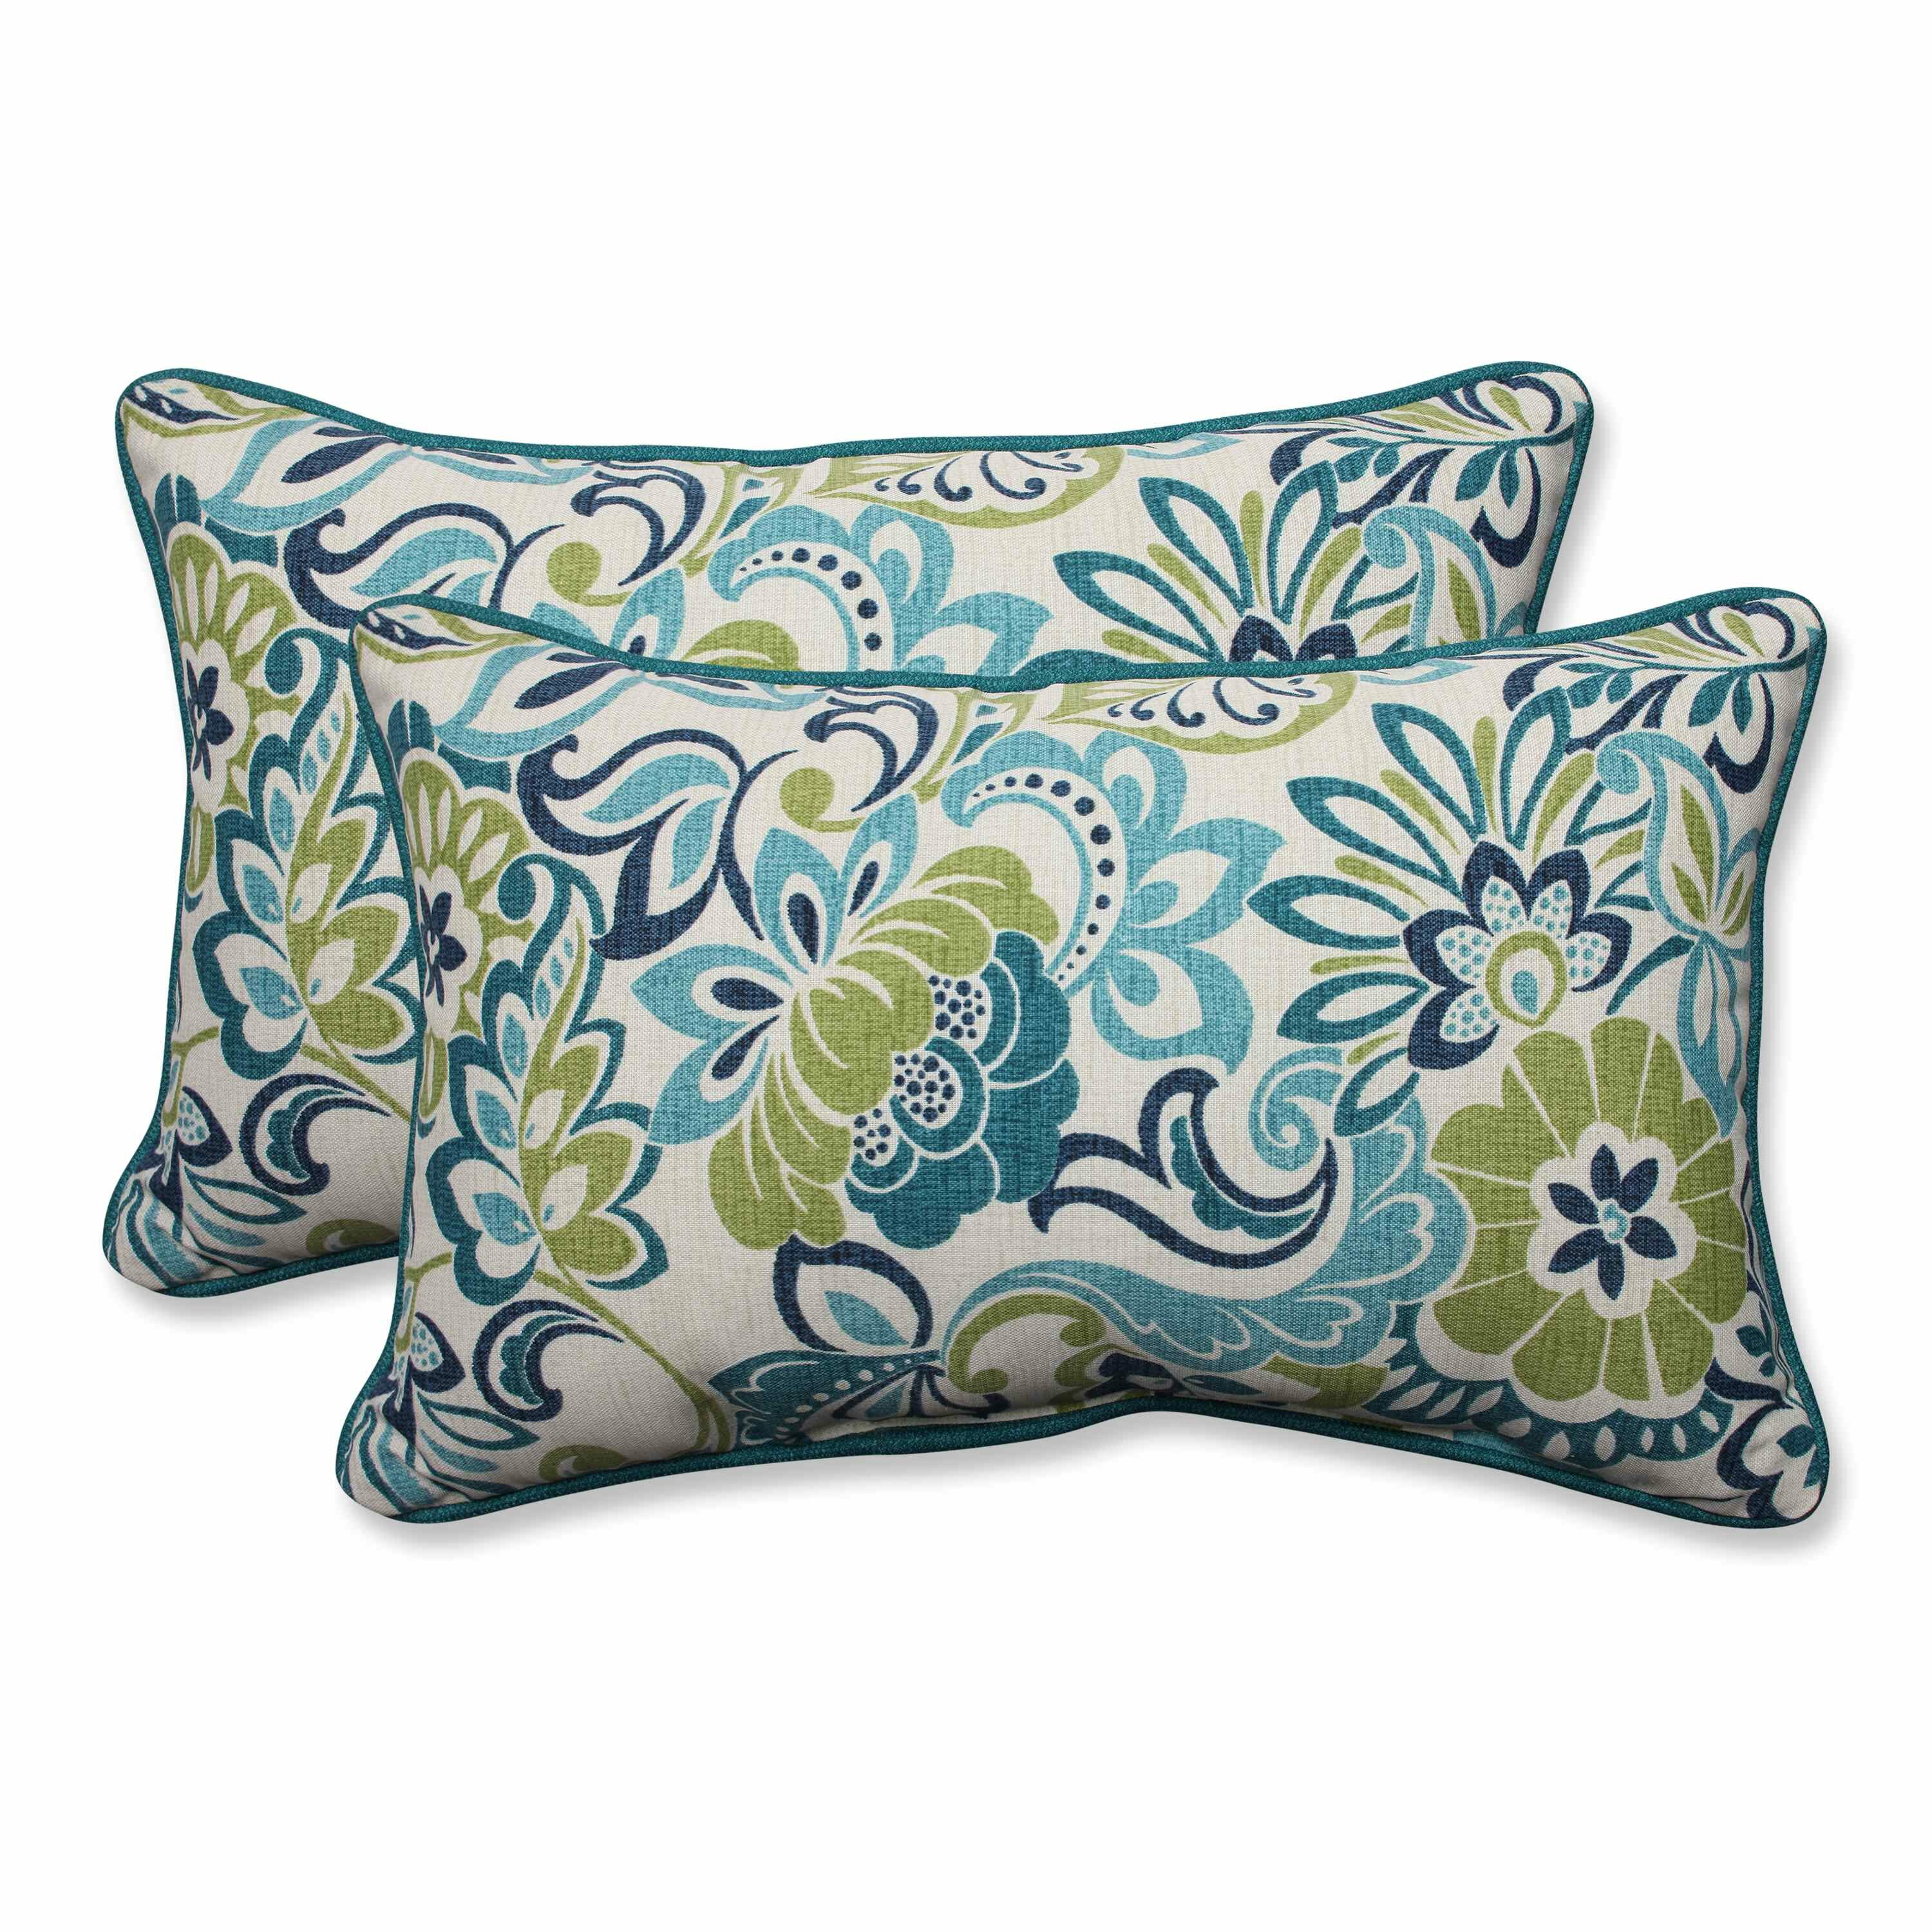 Throw Pillows In Abuja : Pillow Perfect Zoe Mallard Outdoor/Indoor Throw Pillow & Reviews Wayfair.ca